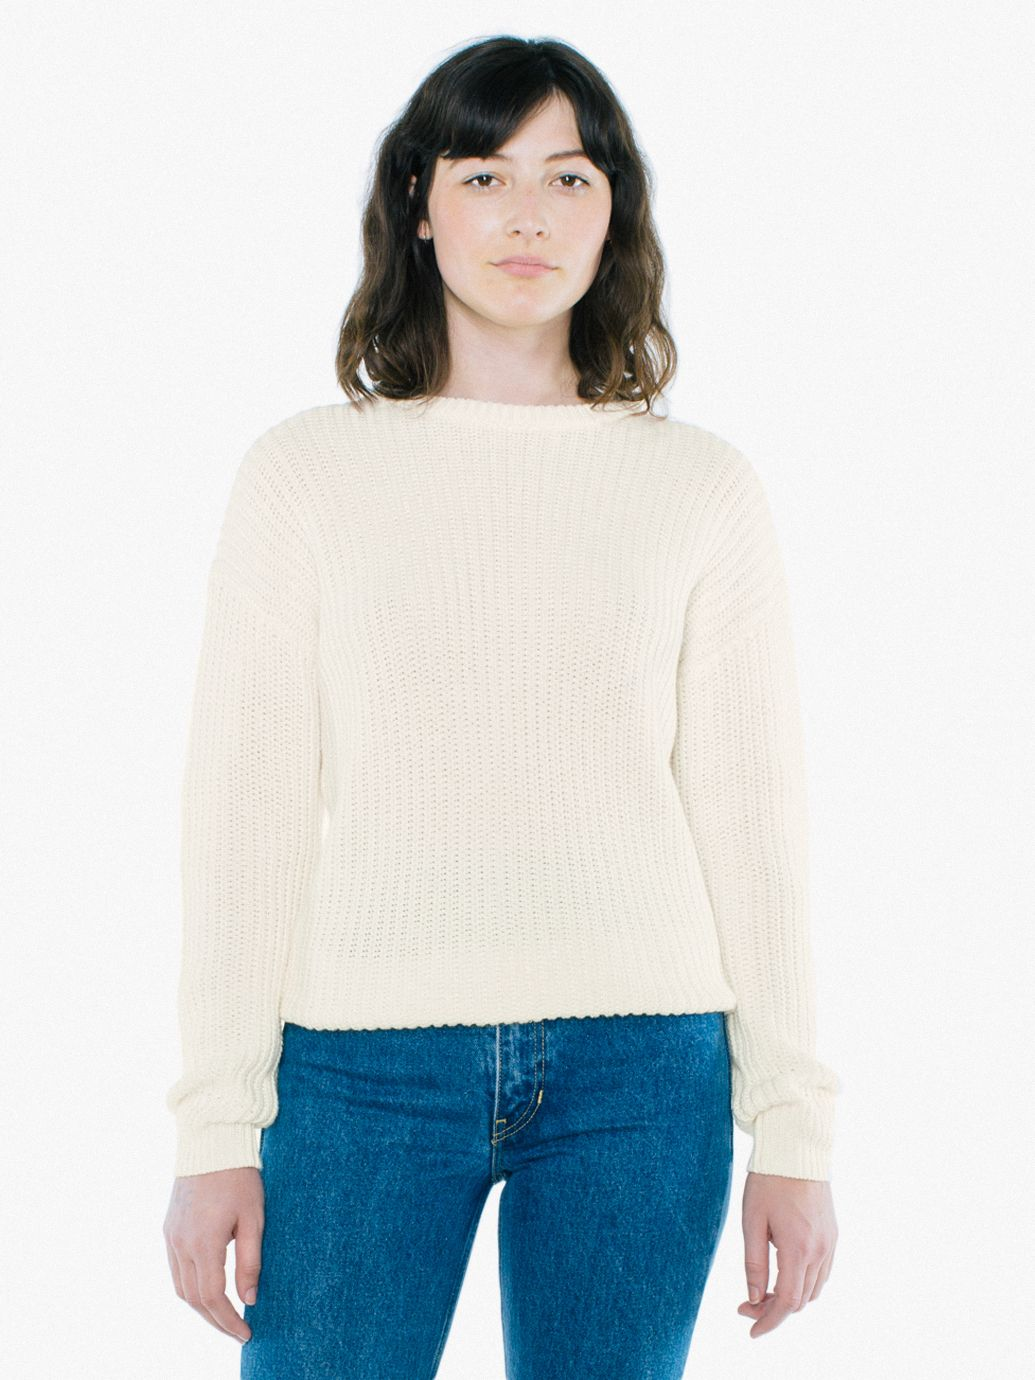 Unisex Fisherman Pullover American Apparel Basic Pull Over Sweater Product Gallery Element